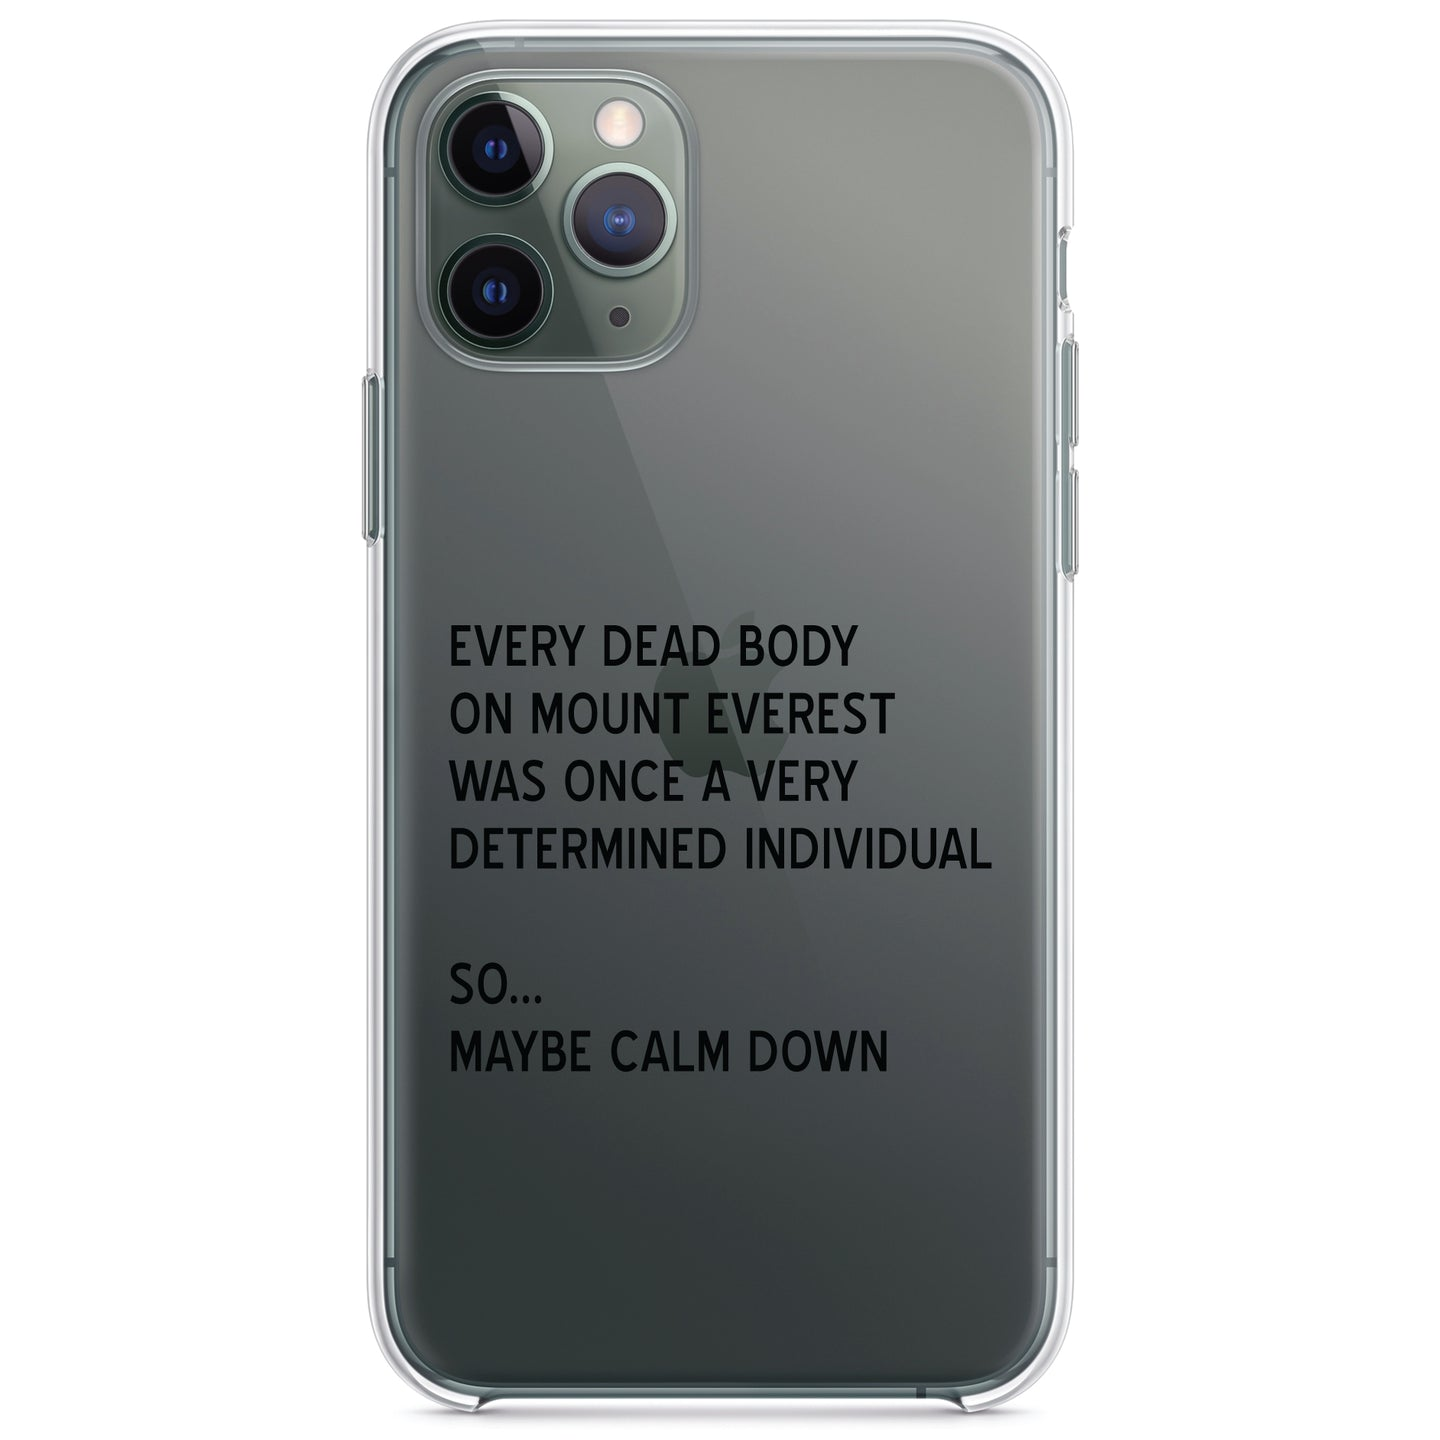 DistinctInk® Clear Shockproof Hybrid Case for Apple iPhone / Samsung Galaxy / Google Pixel - Every Dead Body on Everest - Calm Down